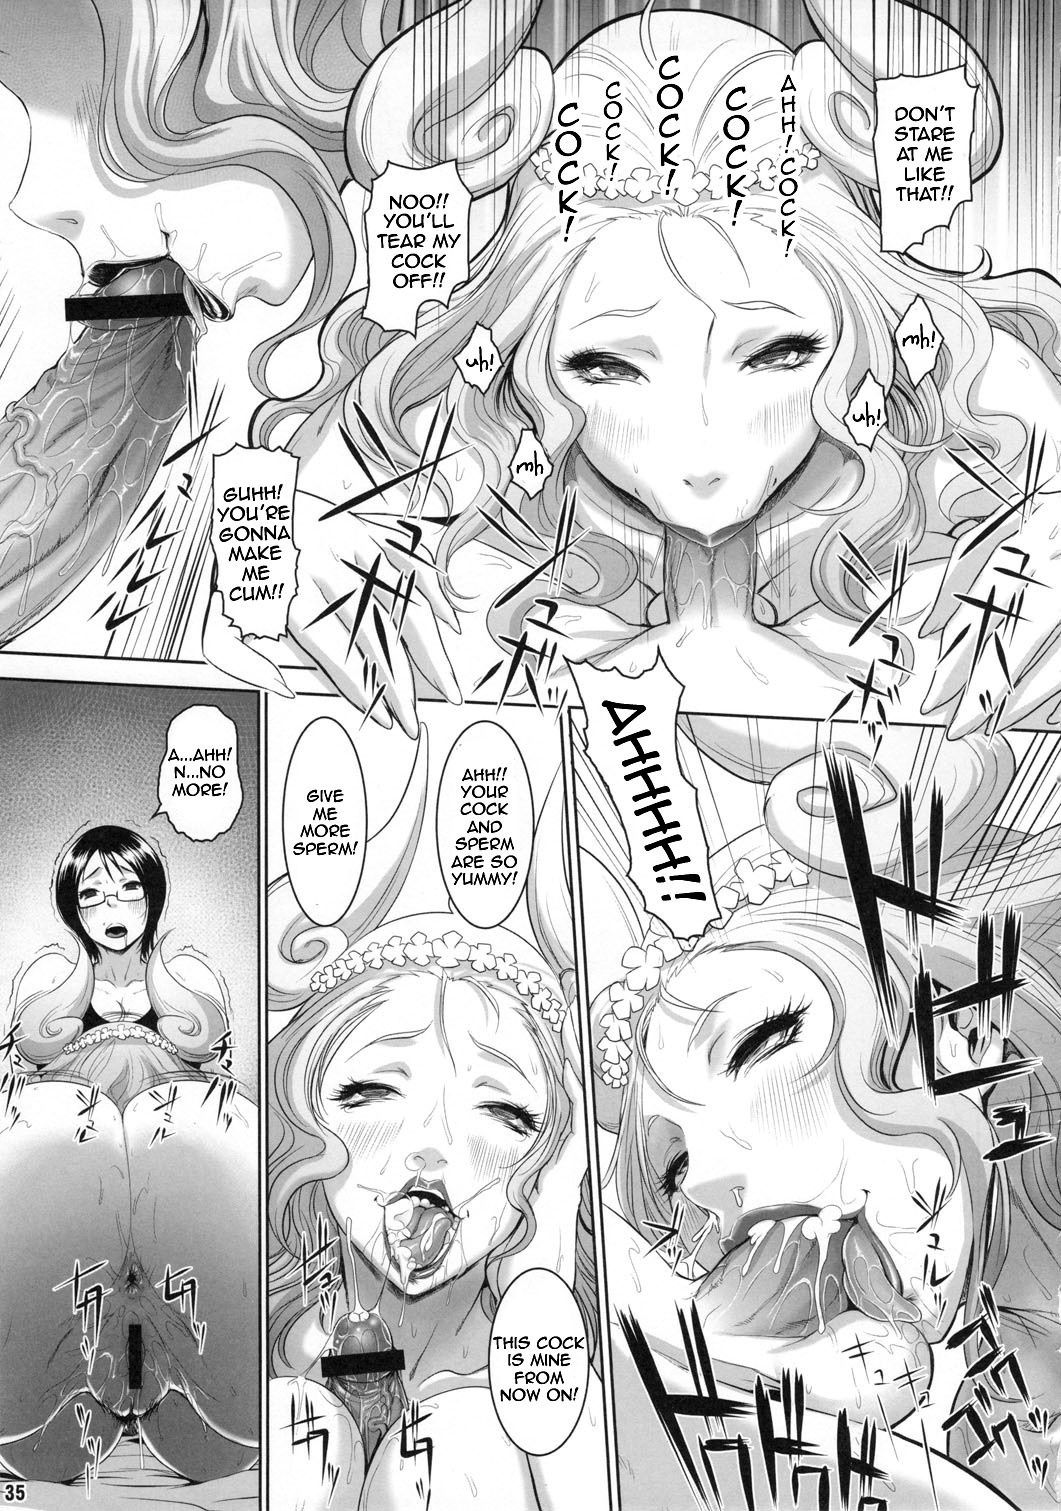 Bloom pirate hooker queen hentai manga picture 28